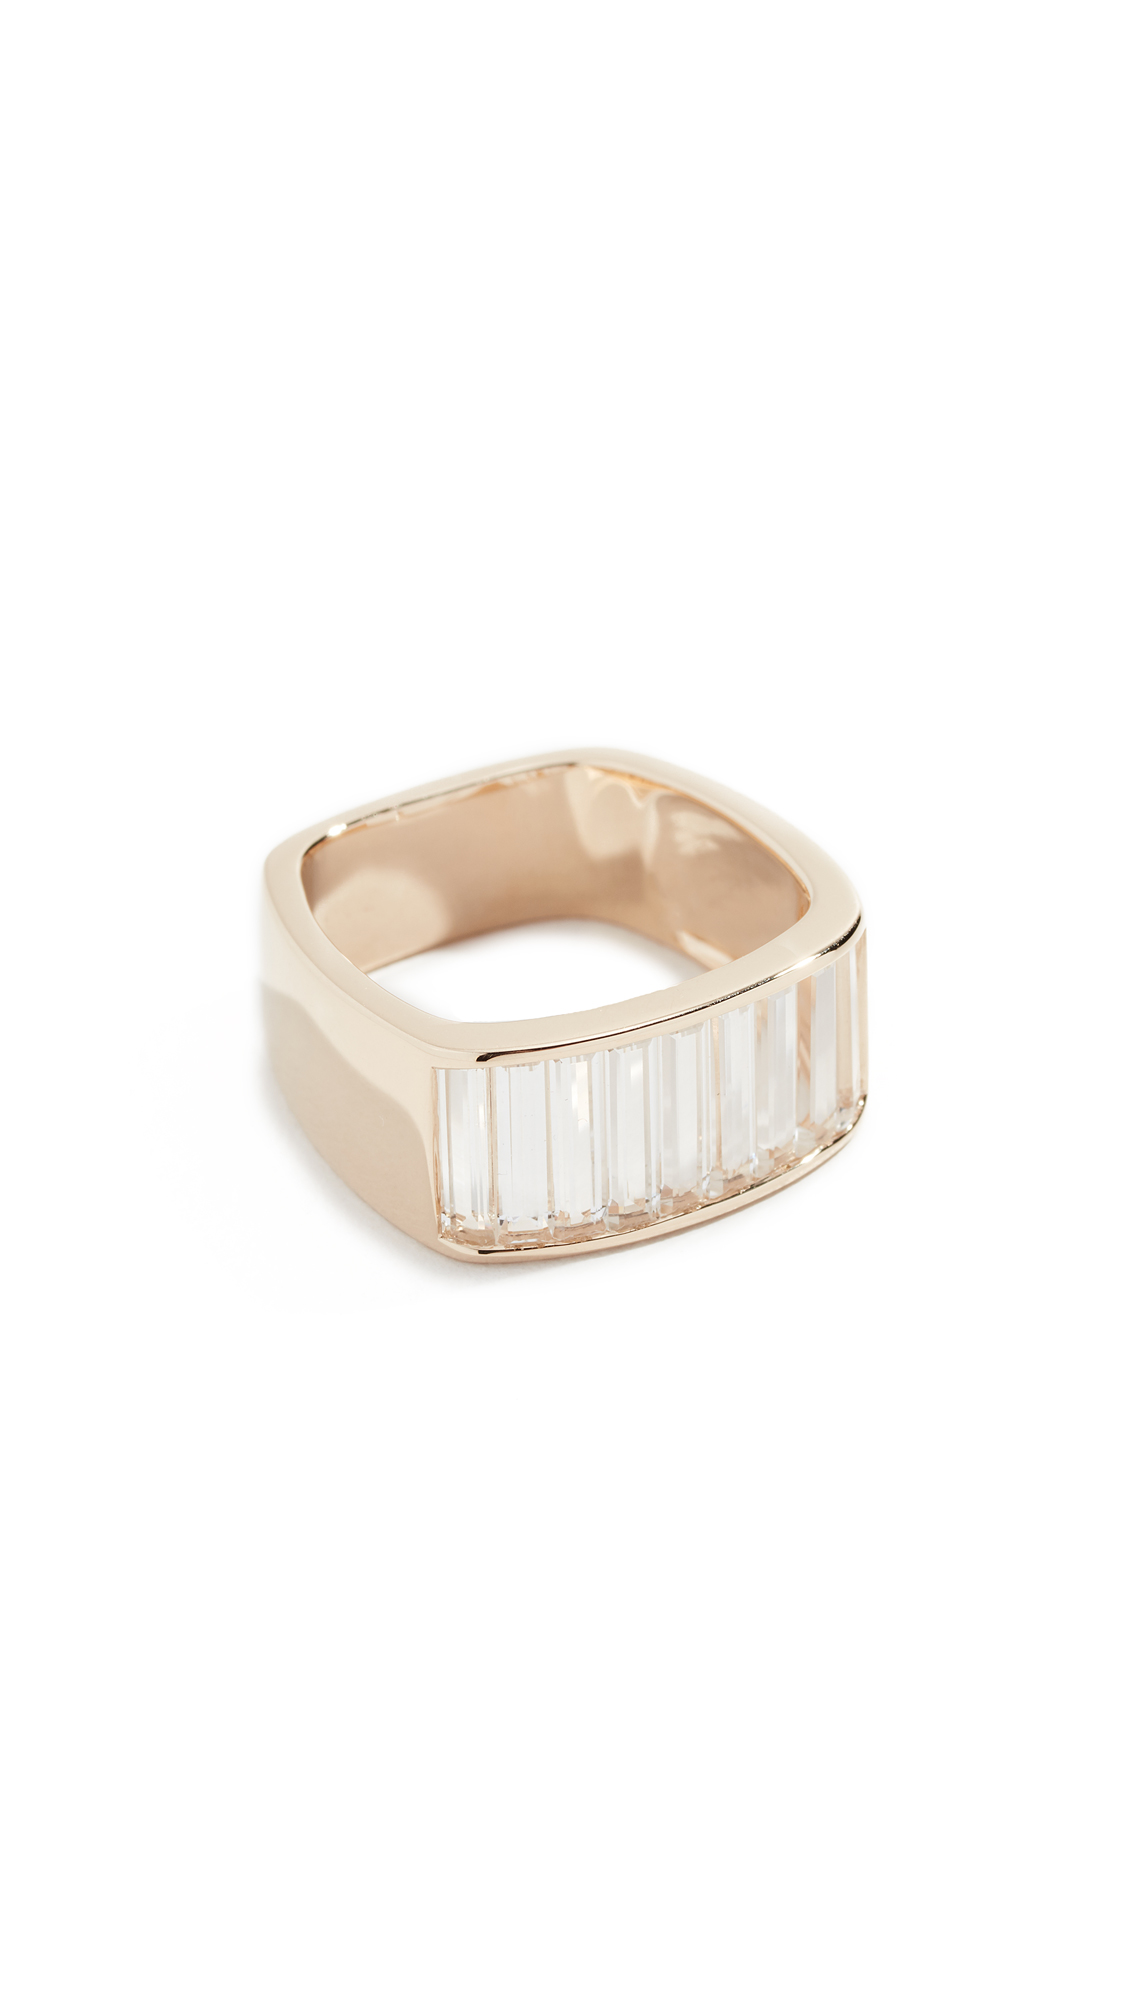 JANE TAYLOR 14K Square Band Ring in Yellow Gold/Clear